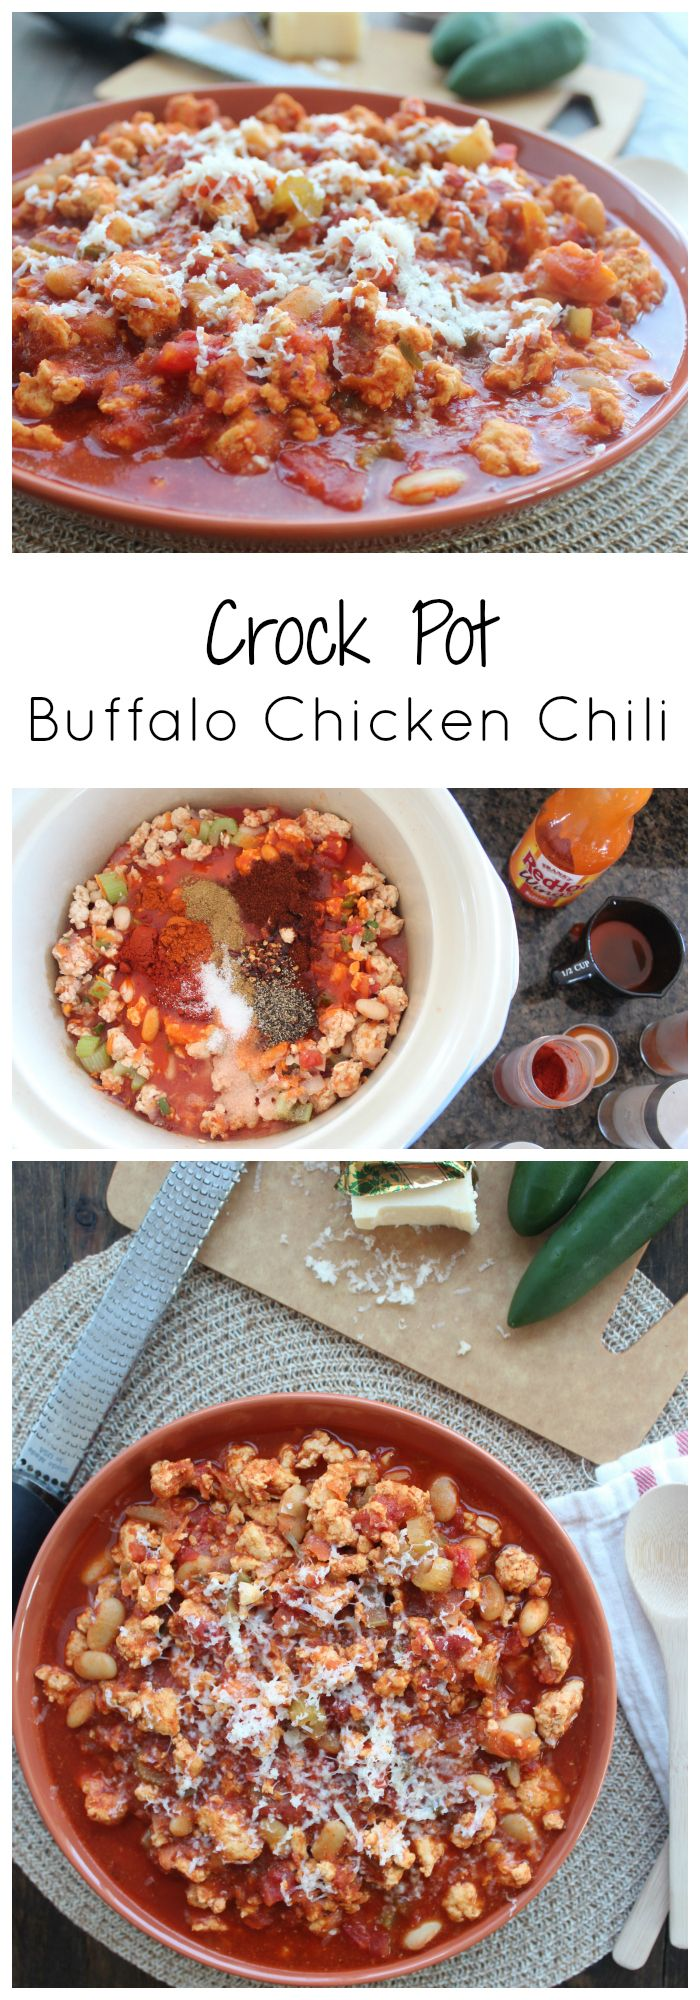 Crock Pot Buffalo Chicken Chili Recipe